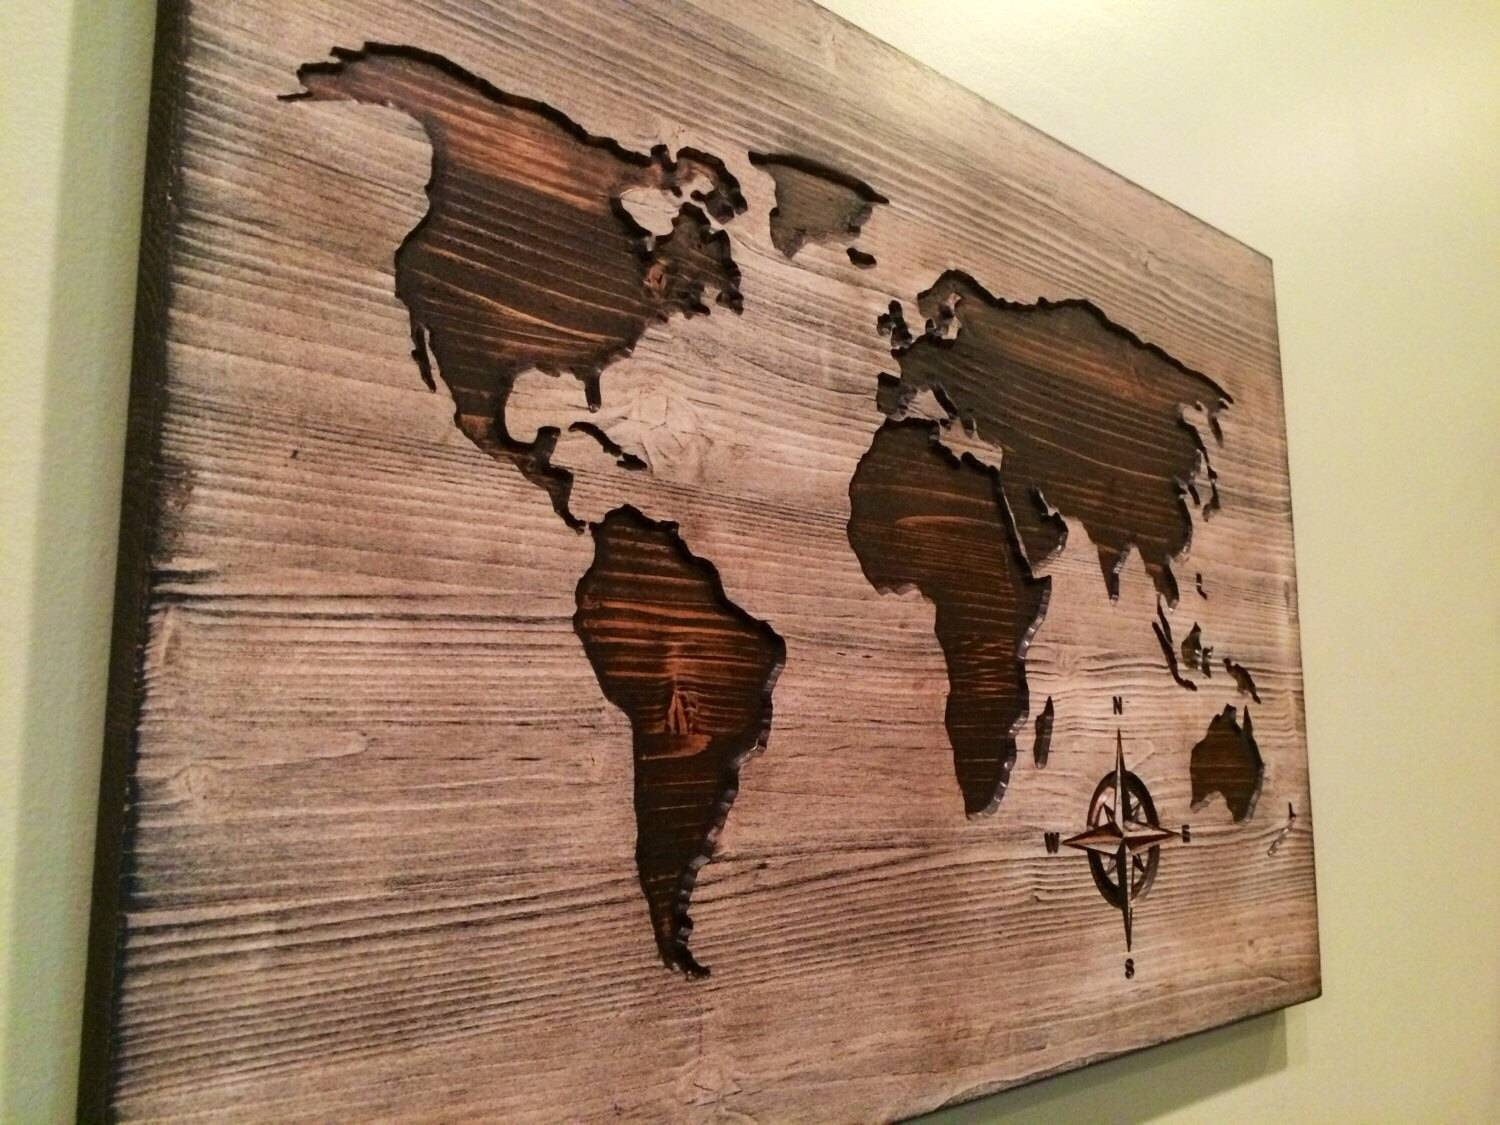 Carved Wooden World Map Wood Wall Art World Map Home Decor Regarding Most Up To Date Maps For Wall Art (View 16 of 20)